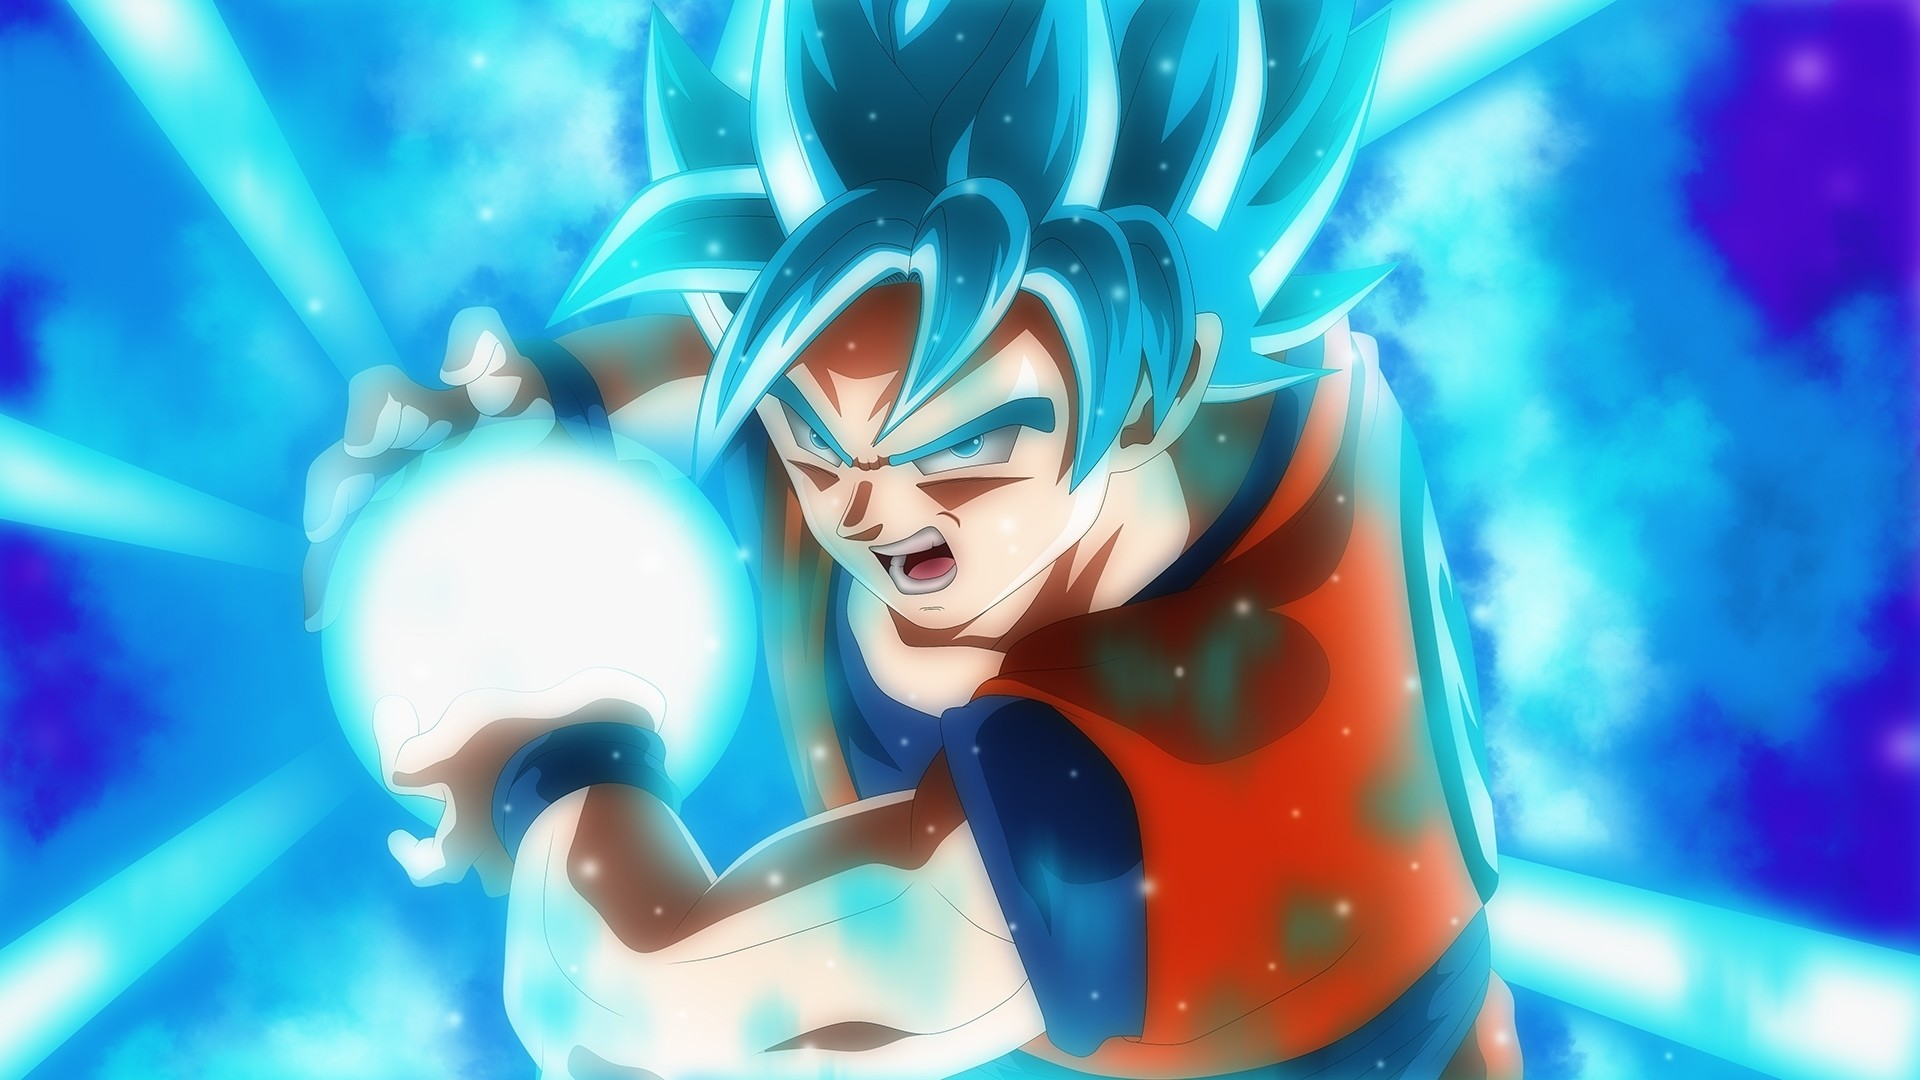 Kamehameha wallpapers 67 background pictures - Dragon ball super background music mp3 download ...